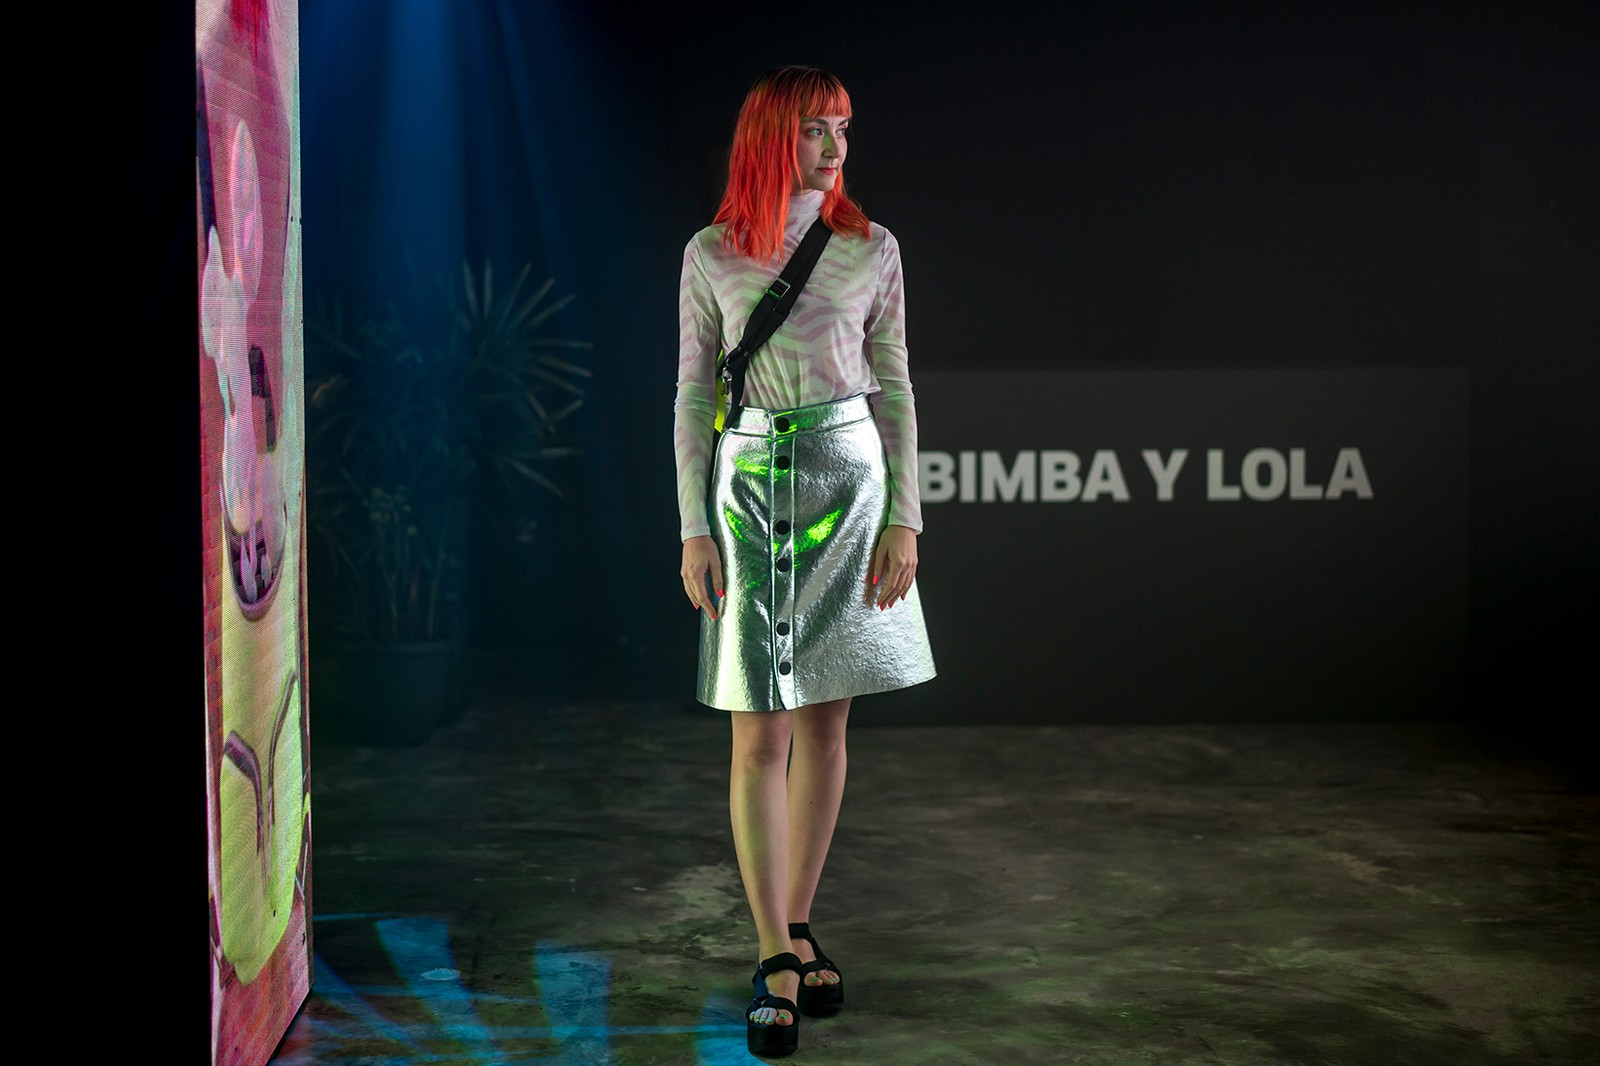 bimba y lola ines alpha 3d makeup artist campaign video singapore event